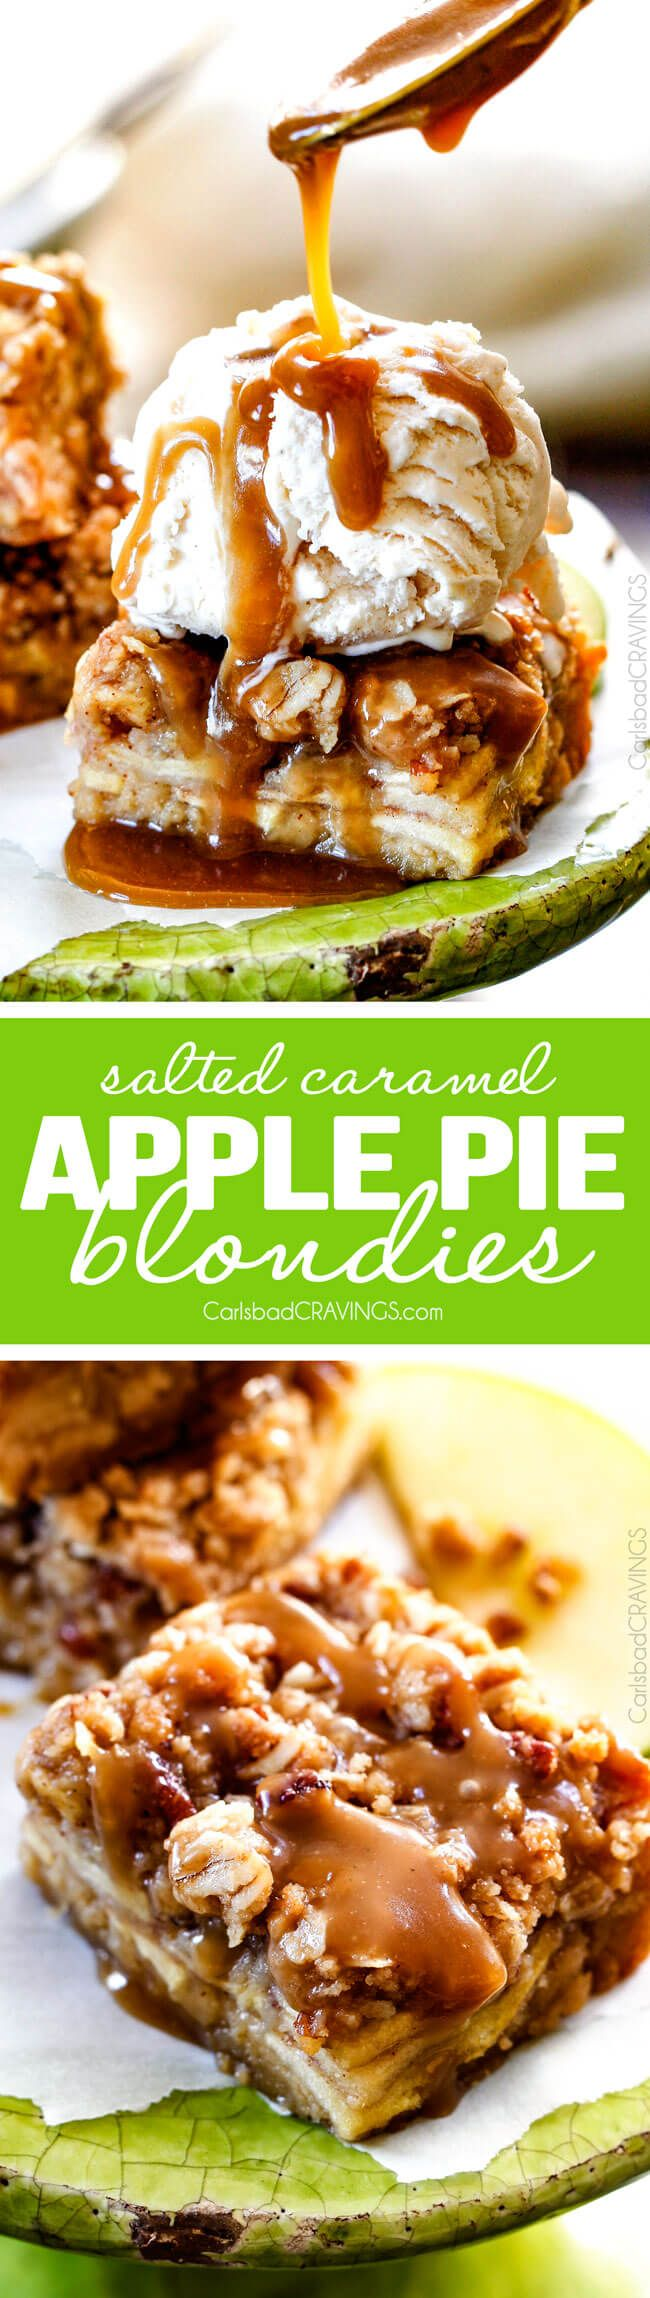 Caramel Apple Pie Blondies | Recipe | Pillsbury cinnamon ...